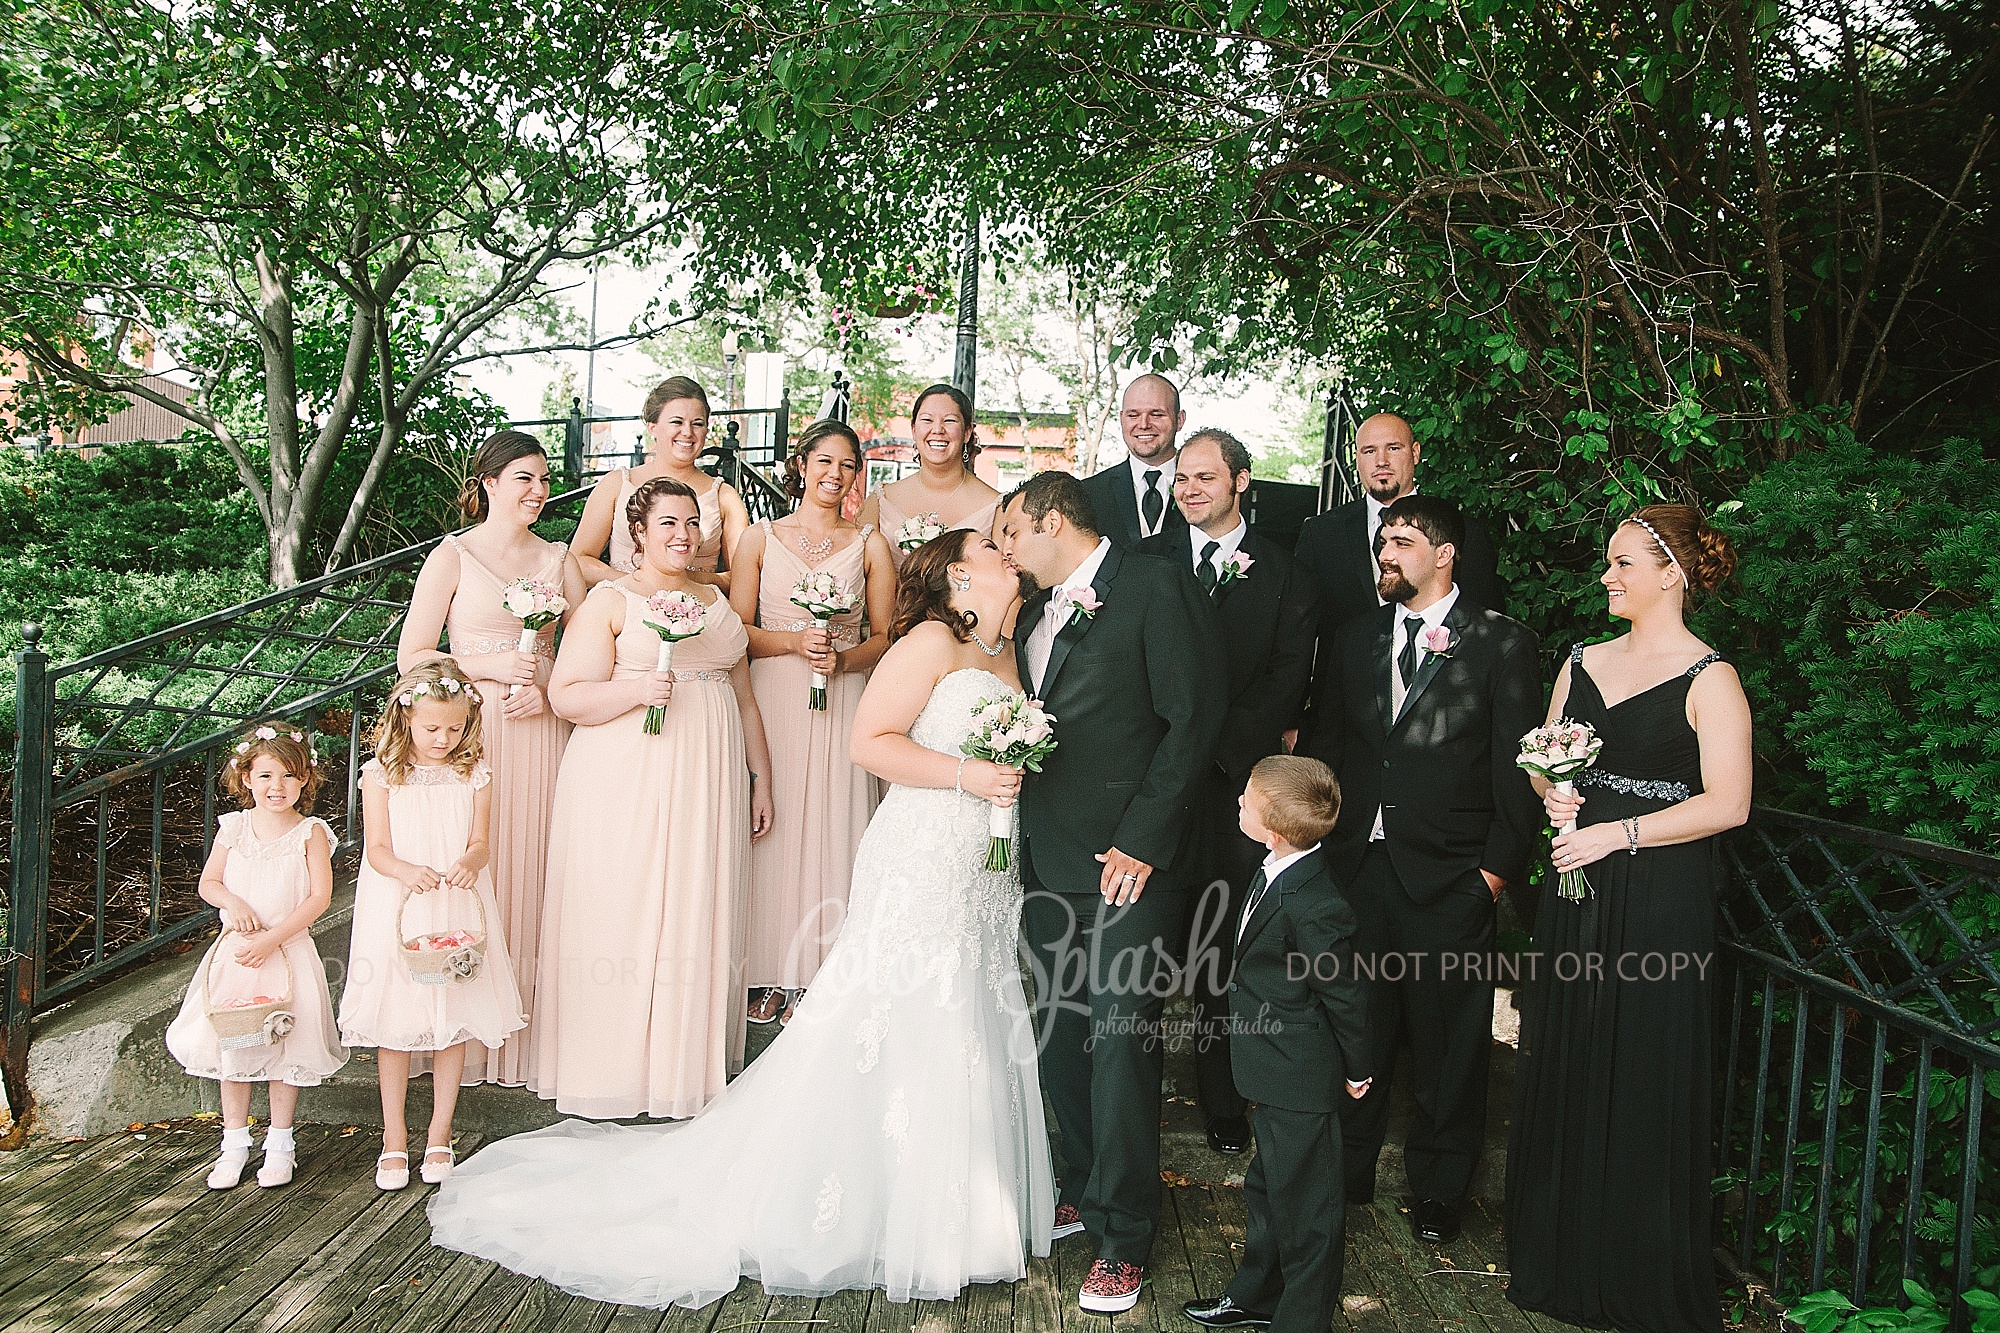 kalamazoo-backyard-wedding-photographer_0467